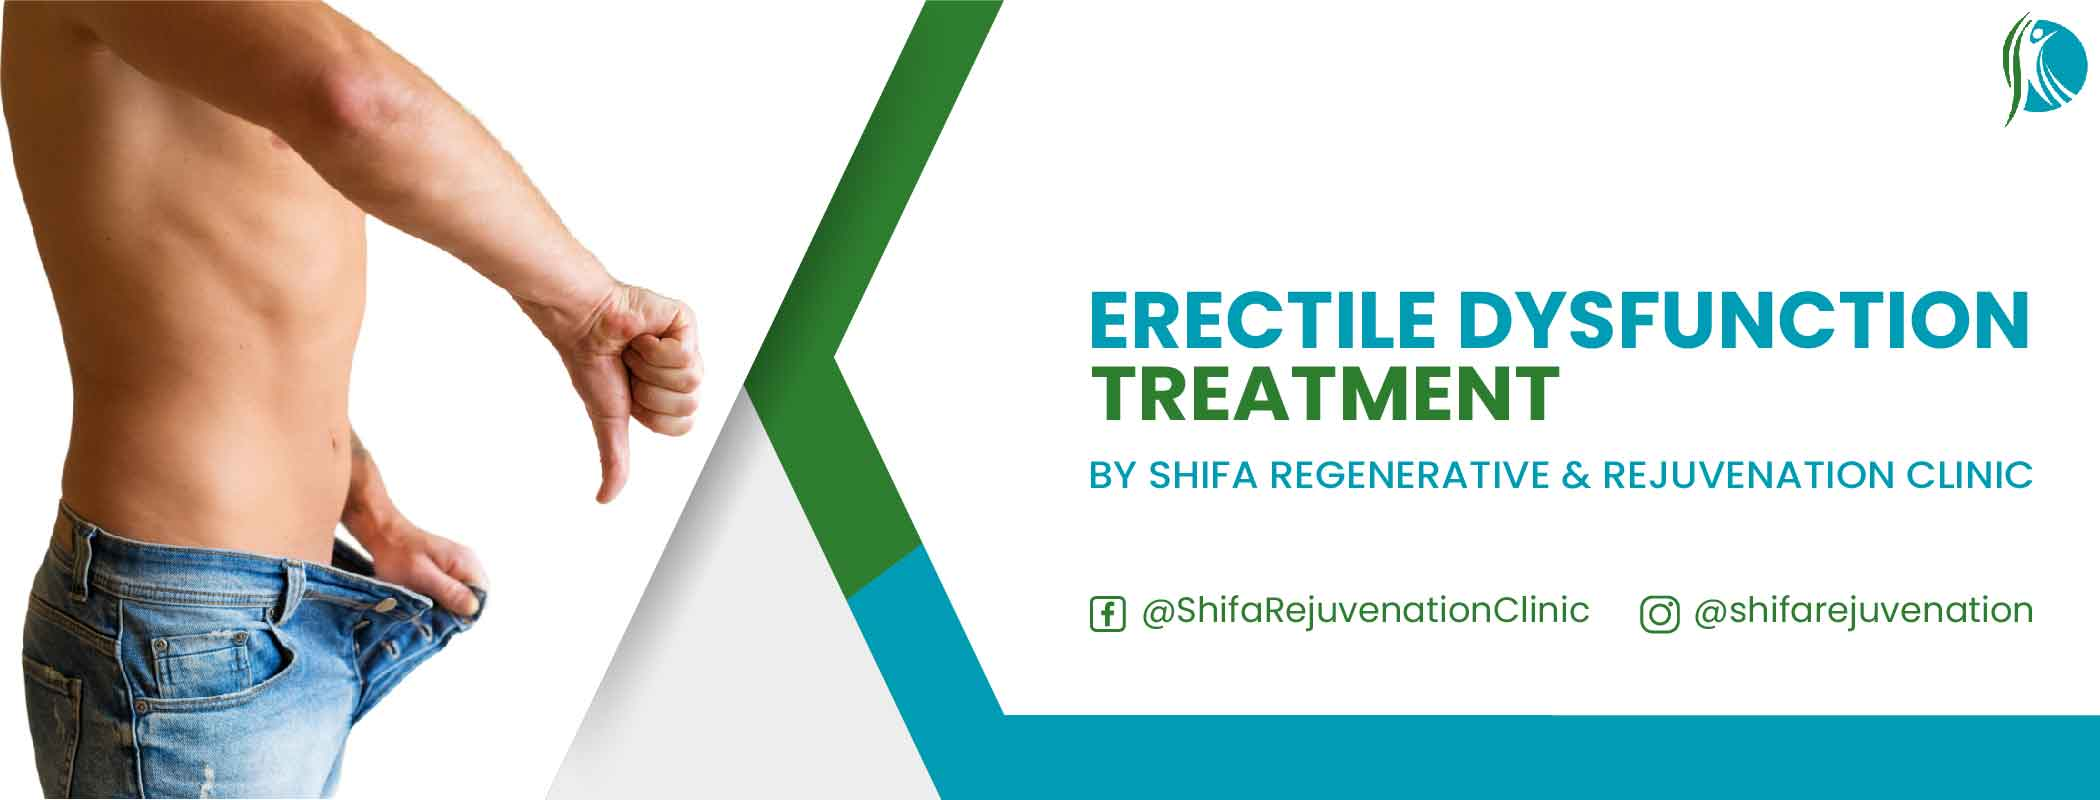 Erectile Dysfunction Treatment through Stem Cell Therapy at Shifa Clinic